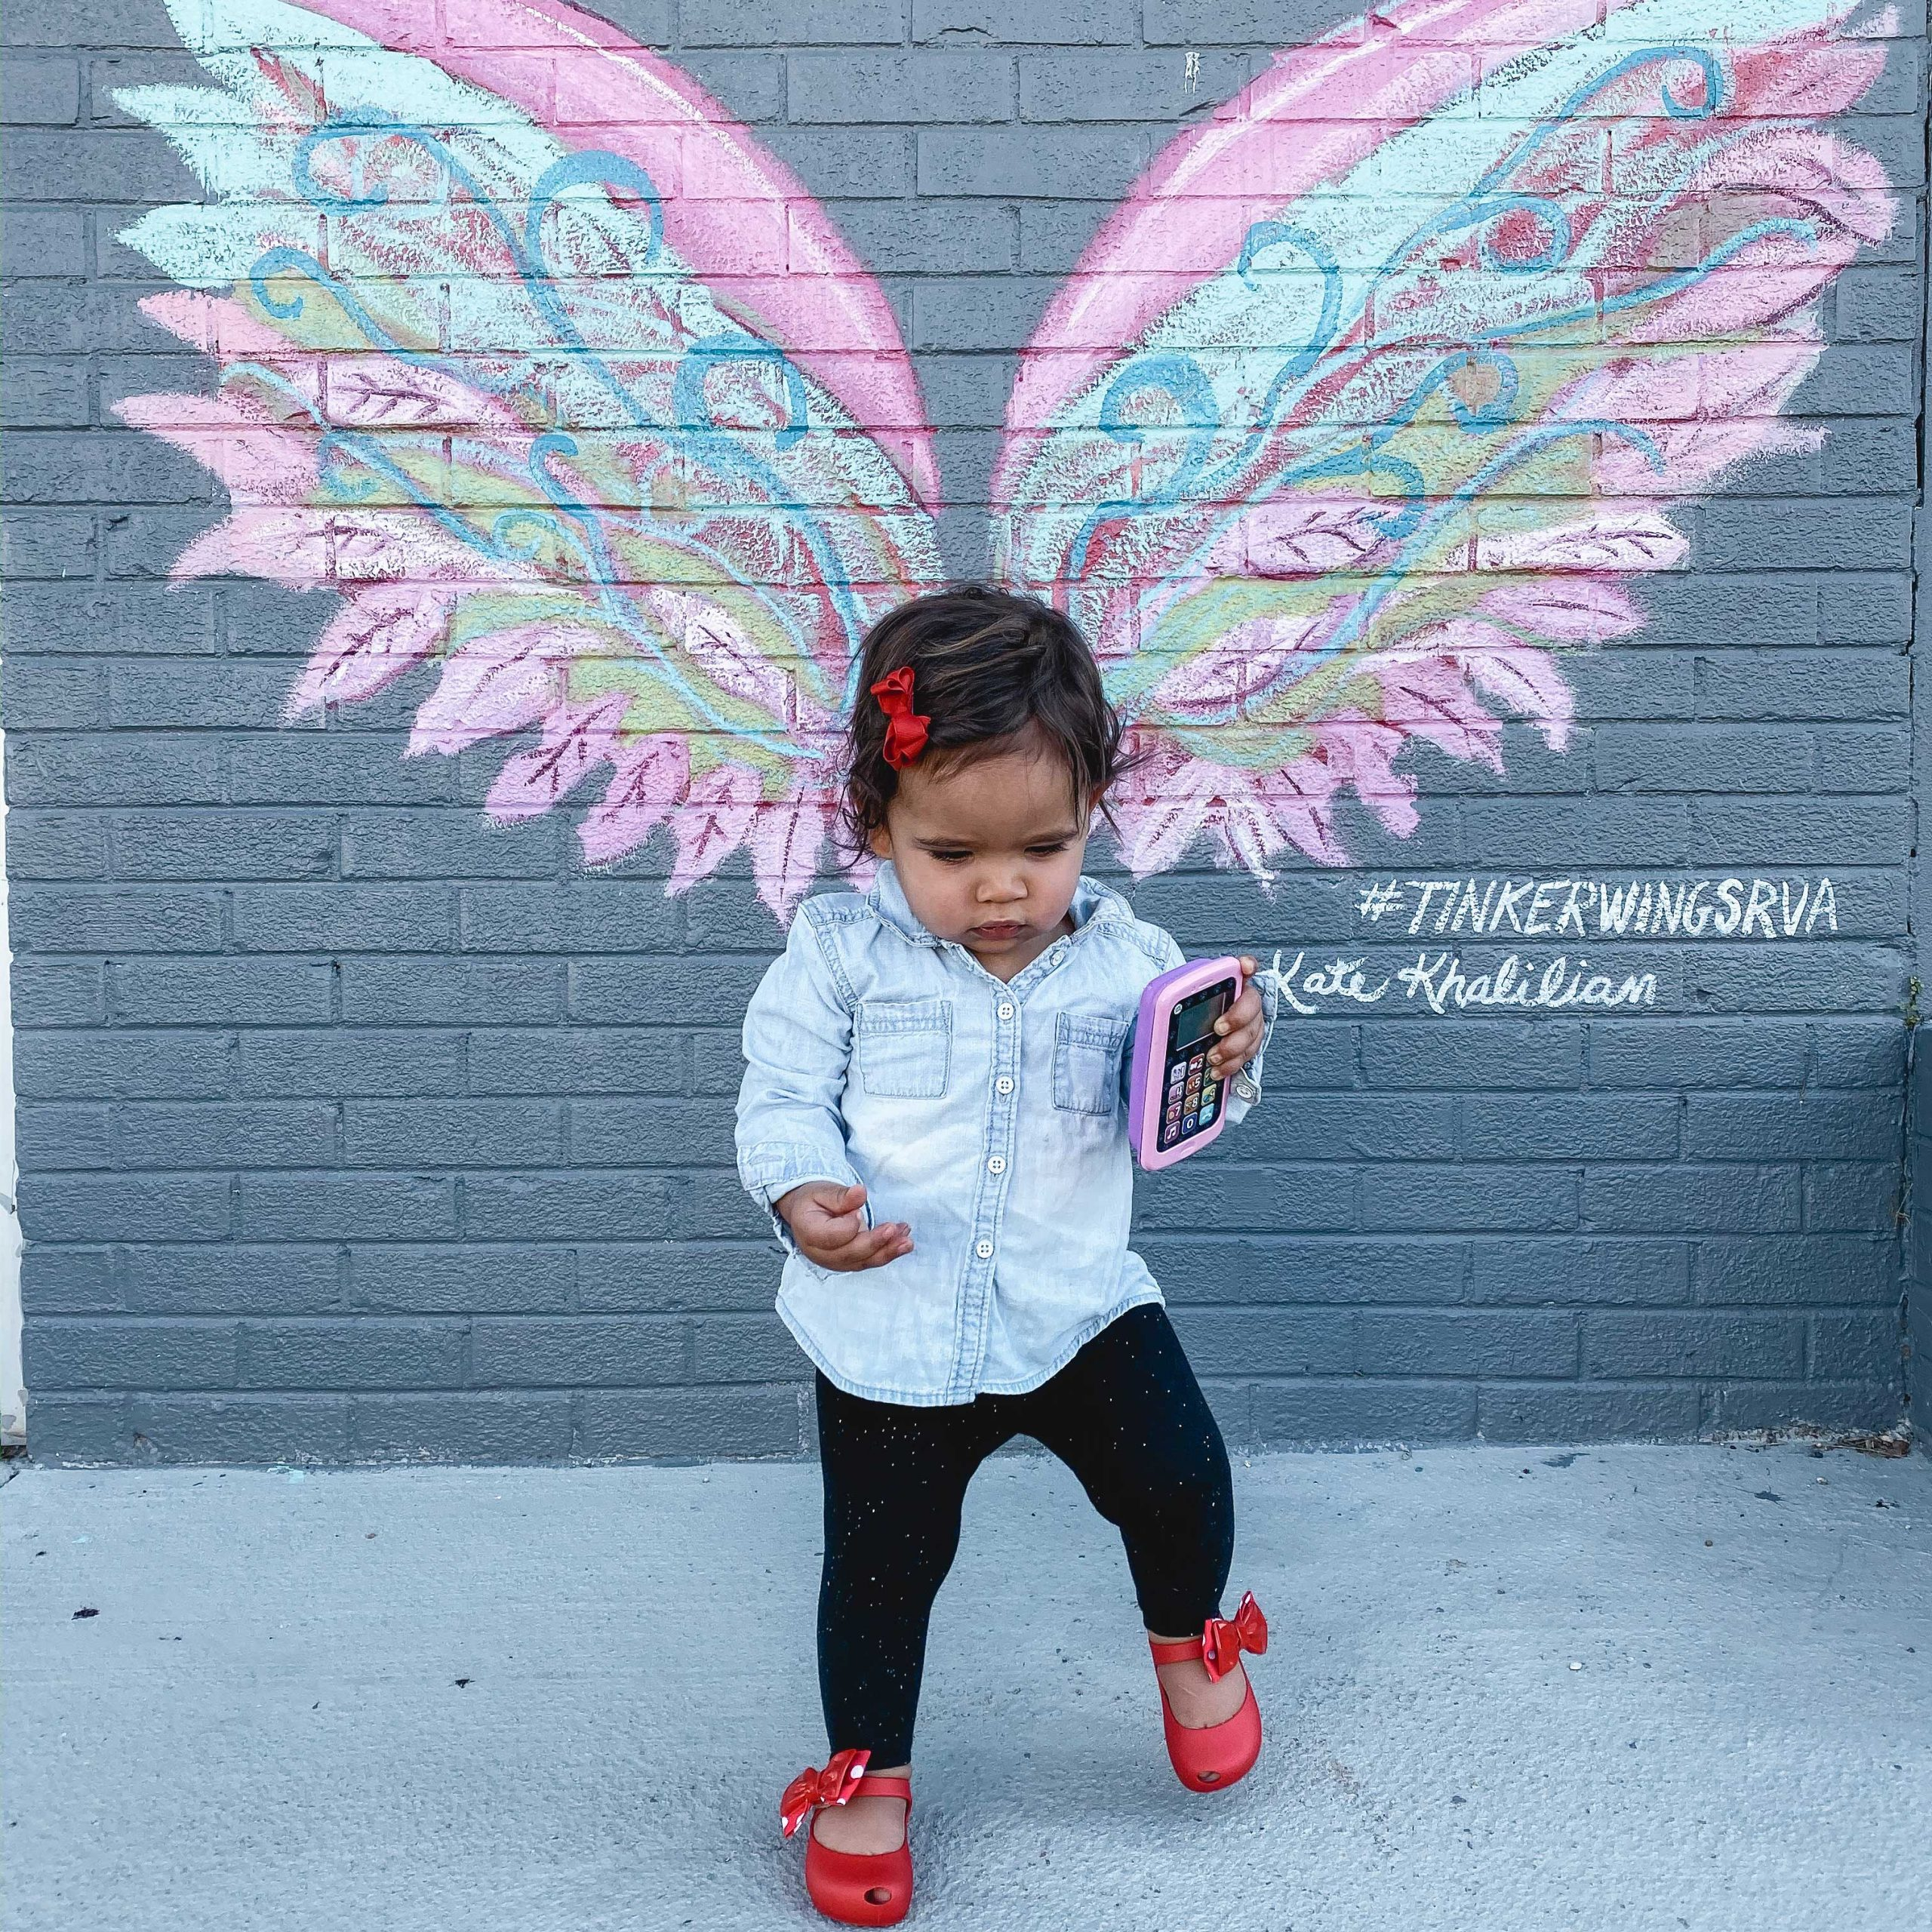 RVA blogger, Lauren Dix, shares all the best Instagram Spots in Richmond, VA! RVA wings mural is at Tinkers!